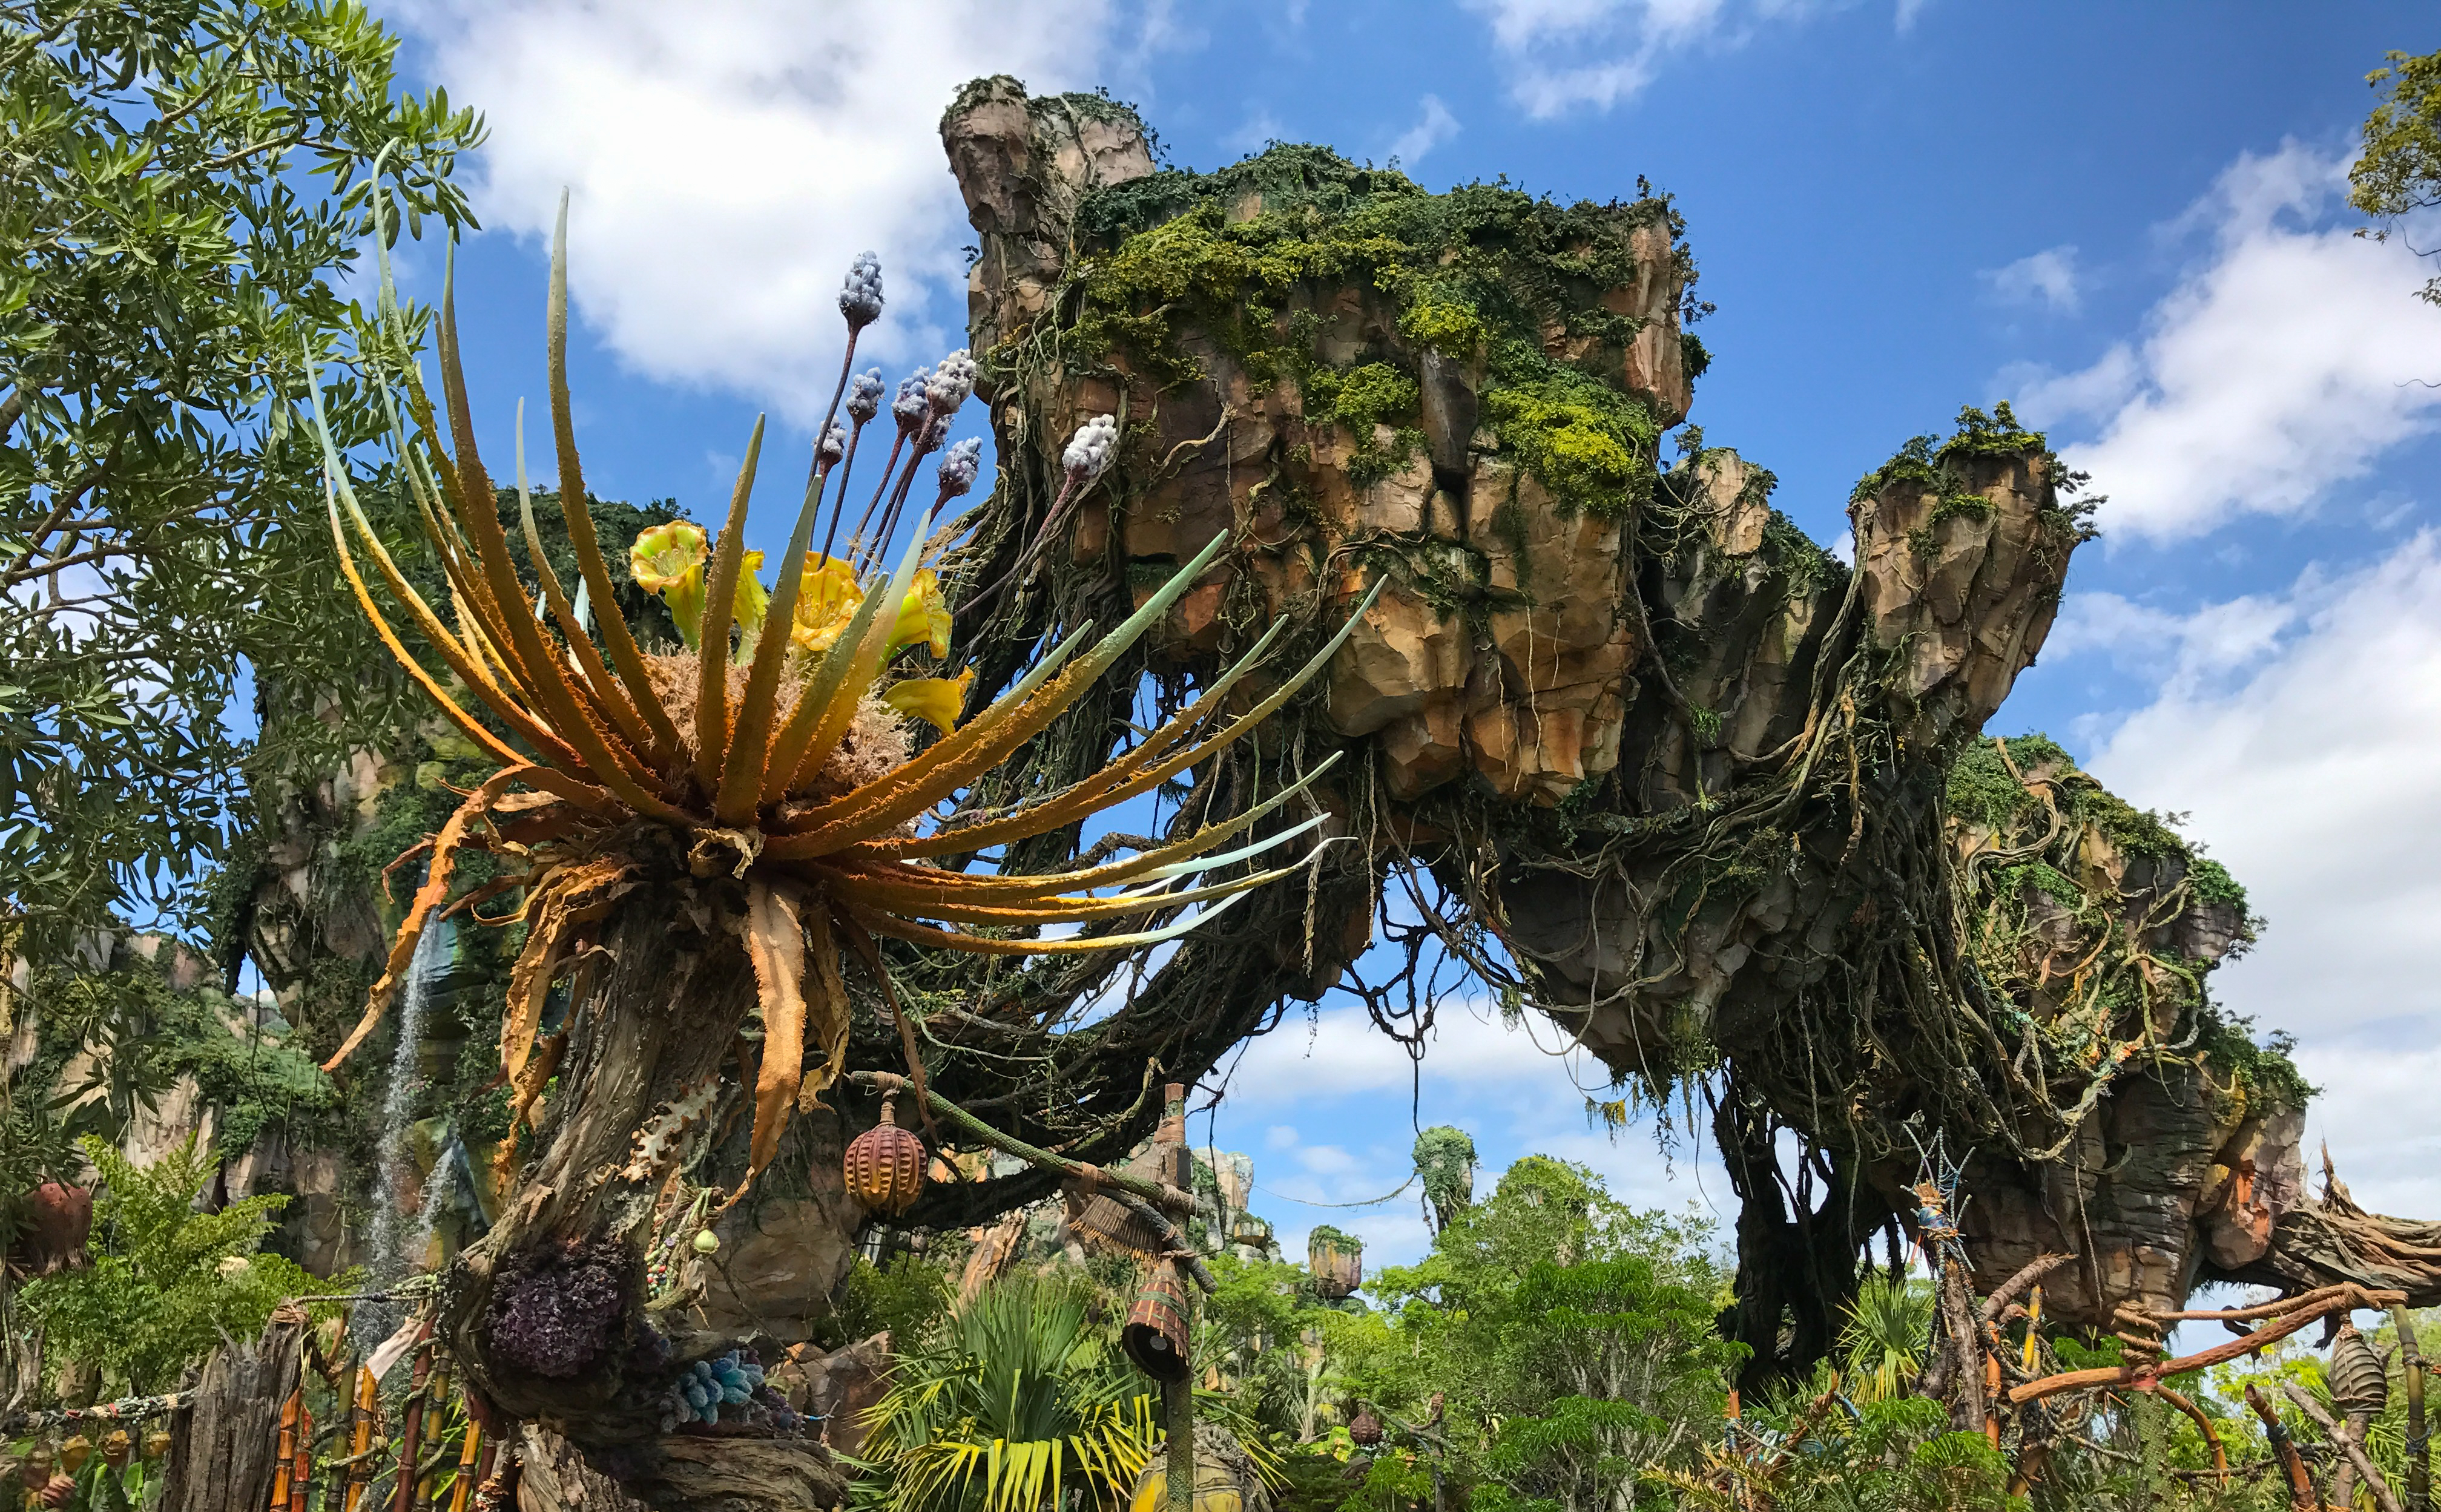 photograph relating to You Re Going to Disney World Printable referred to as How toward Check out Disney Planet for Reasonably priced via Utilizing Facts Miles